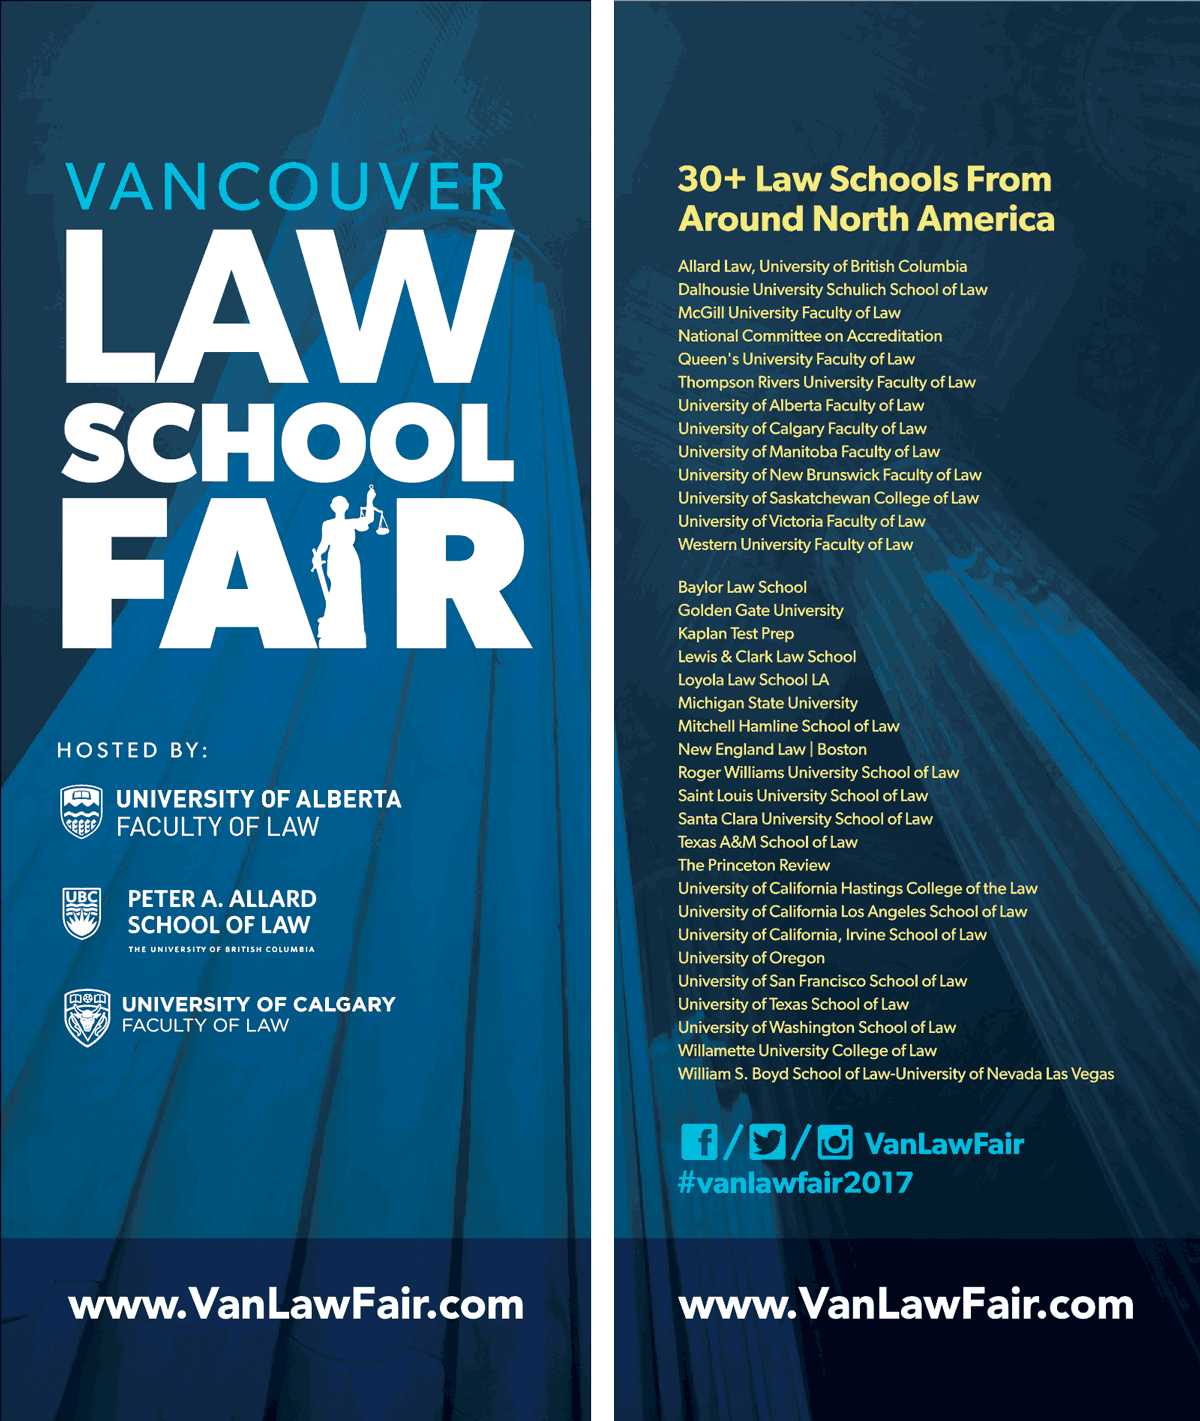 Vancouver Law School Fair 2017 – banners